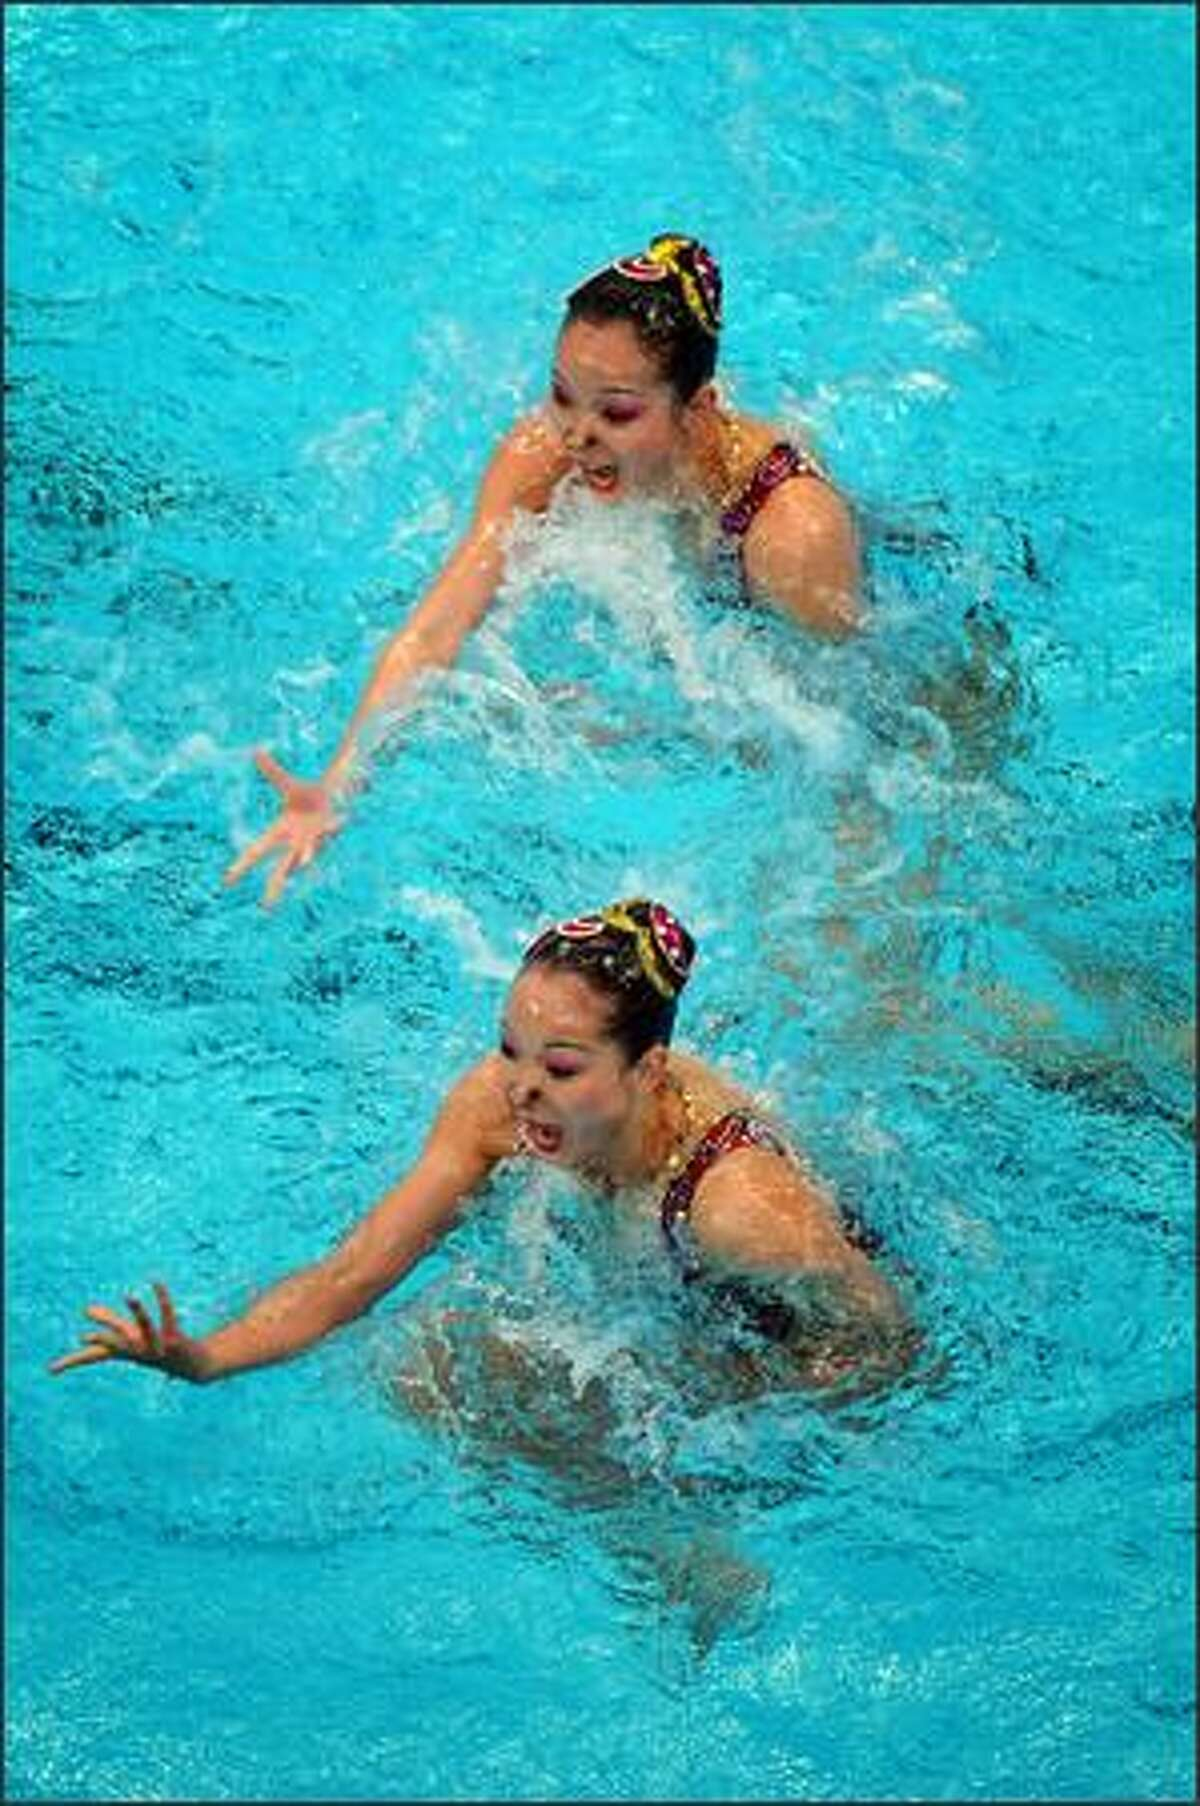 Japanese Saho Harada, top, and Emiko Suzuki perform during their synchronized swimming duet technical routine during the 2008 Beijing Olympic Games on Monday.